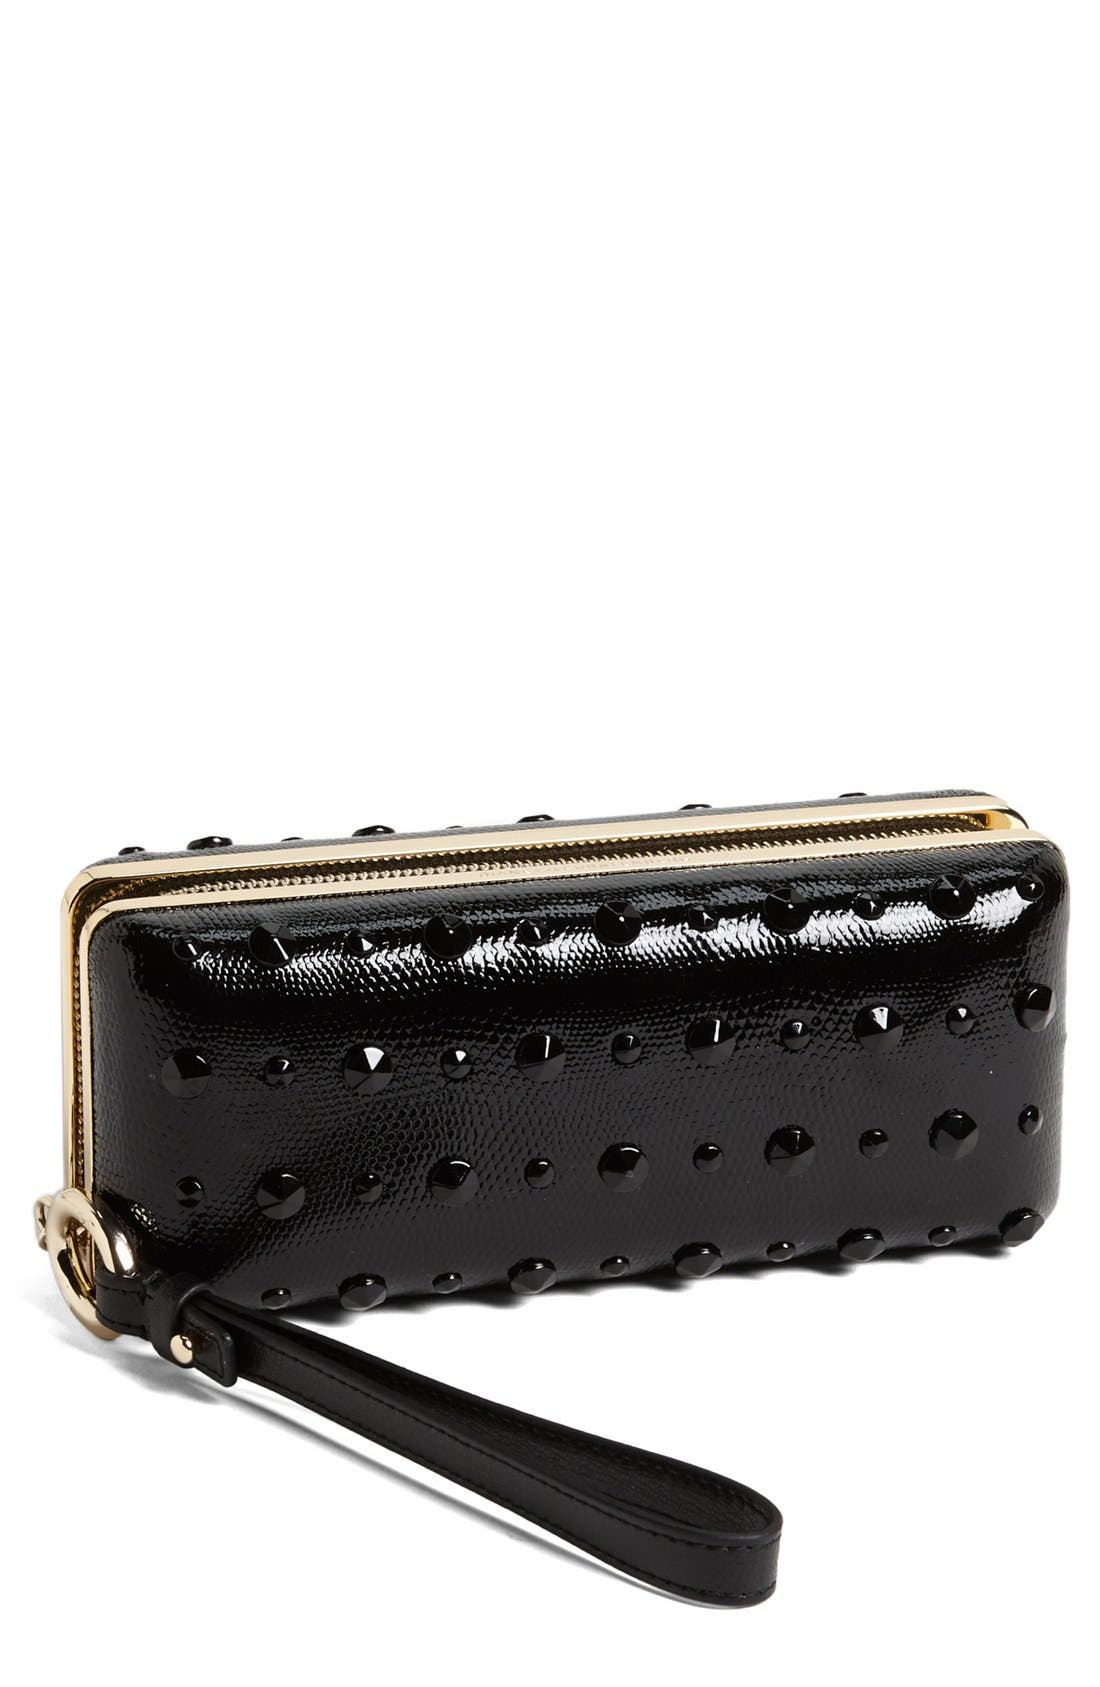 'Joia' Studded Minaudiere,                         Main,                         color, Black/ Black